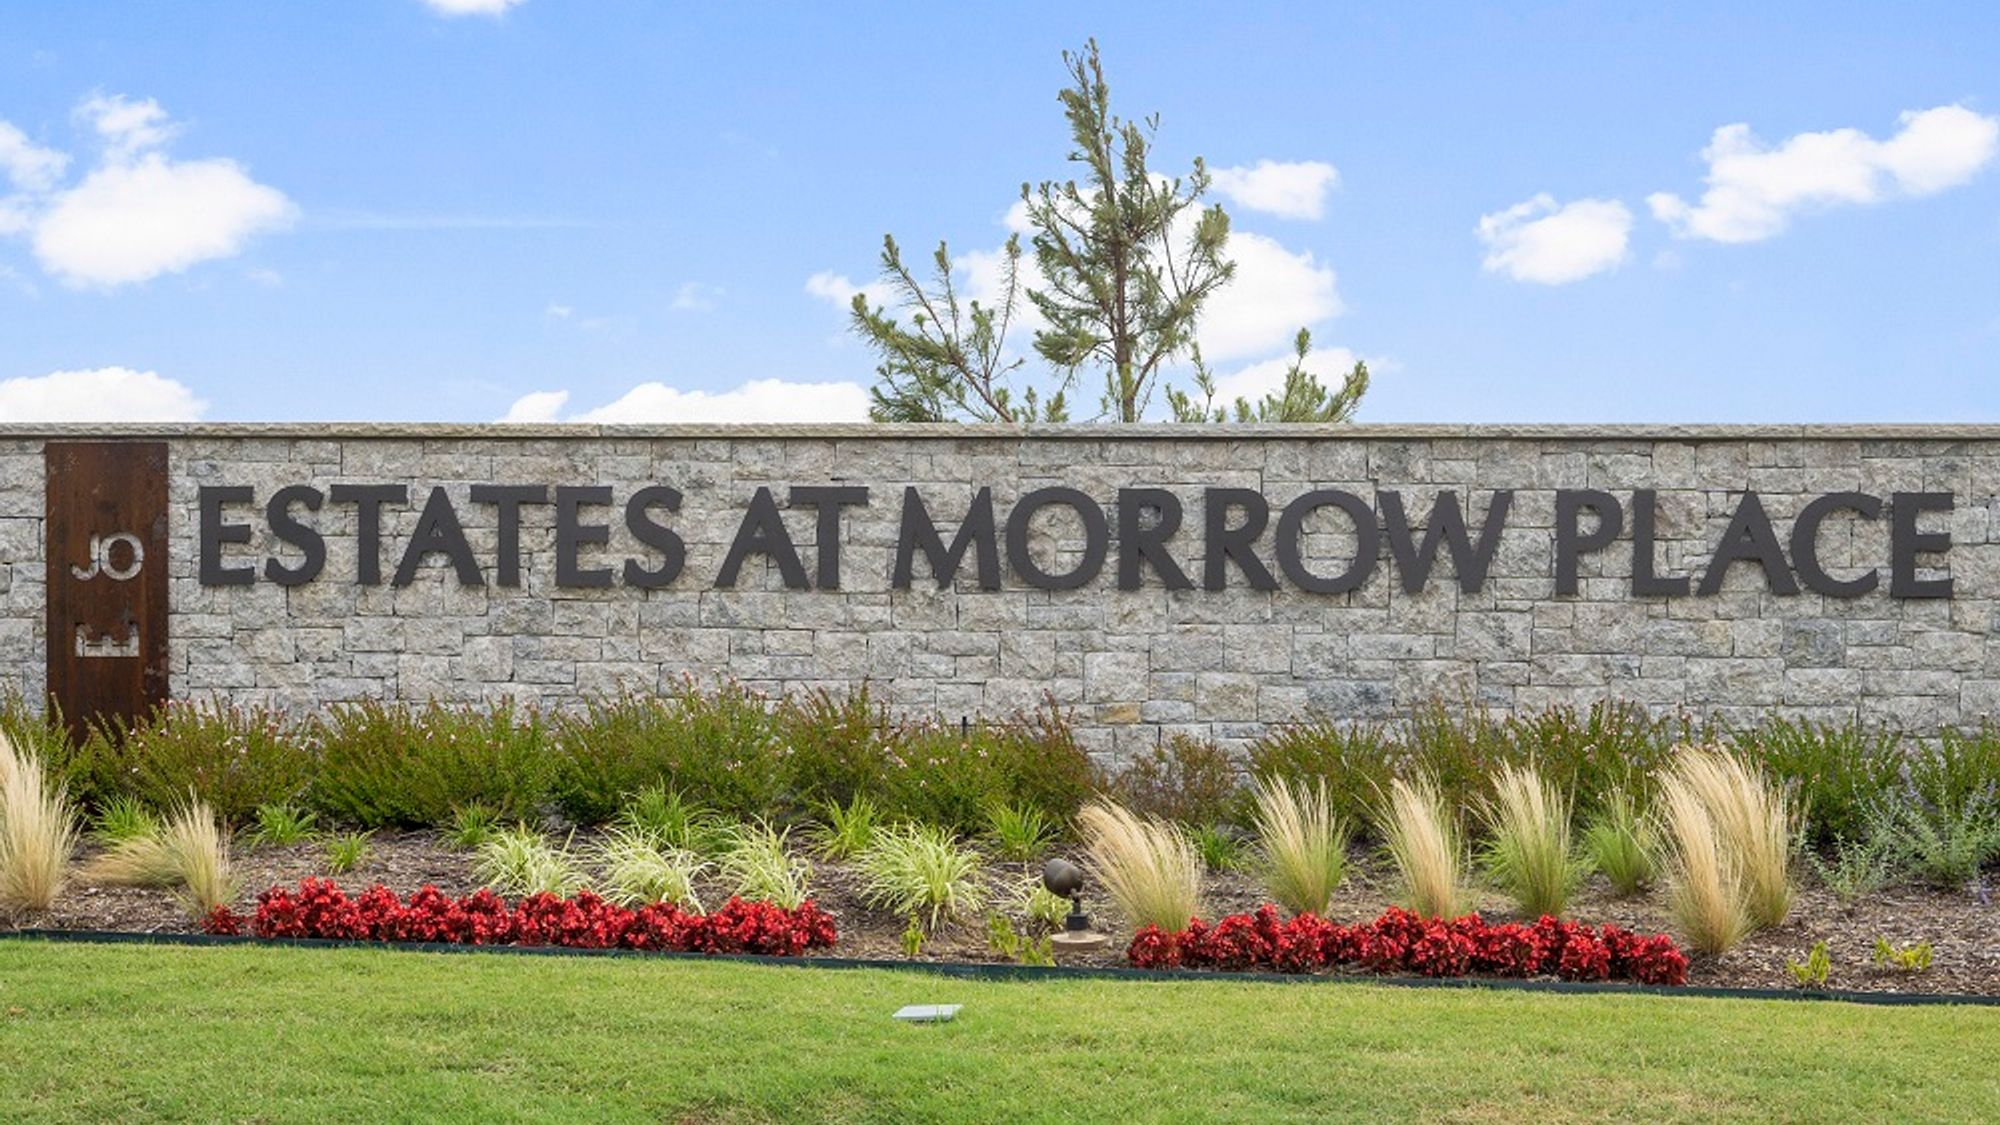 estates morrow place